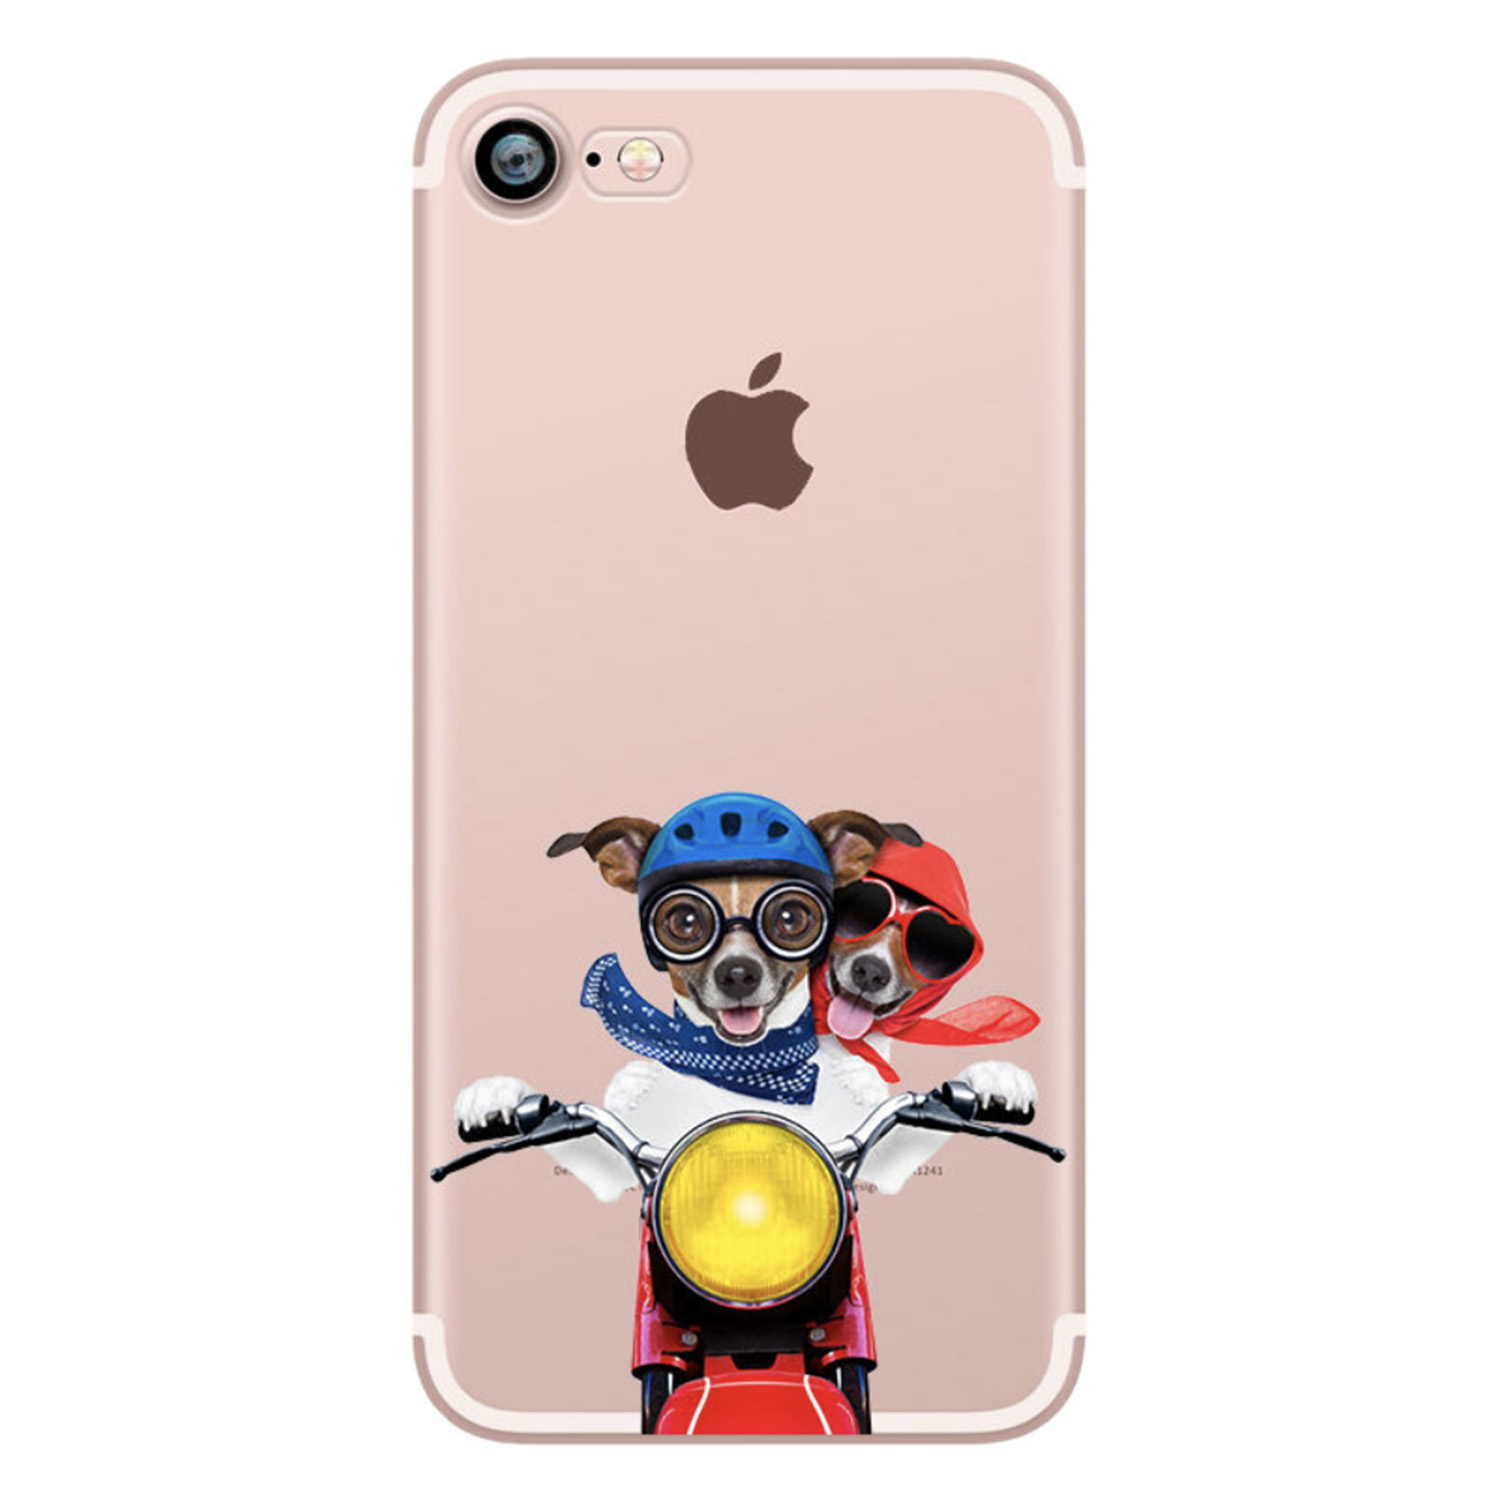 Kritzel Case für iPhone 6 / 6s - Funky Collection #395